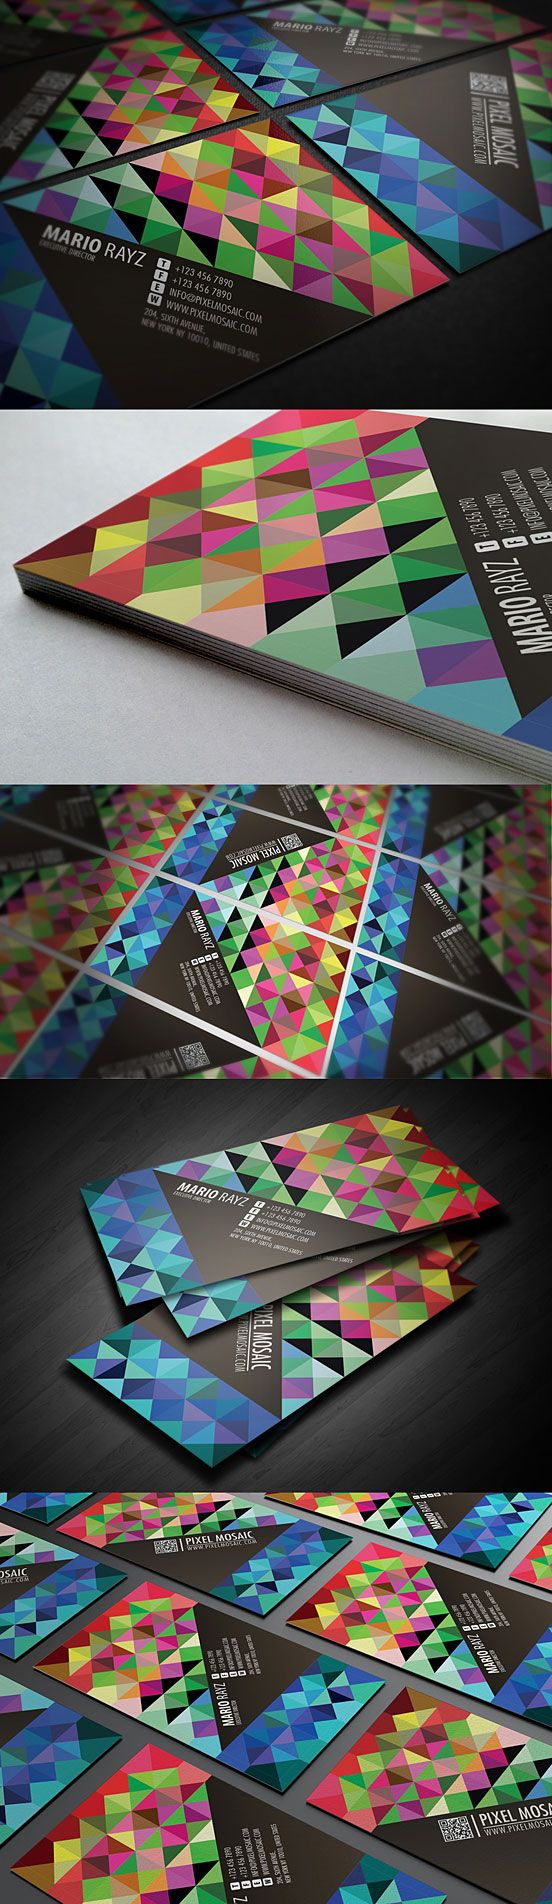 Another Beautiful and Inspiring Business Card. Discover More Cool Business Cards on Our Board!!! repinned by www.kickresume.com